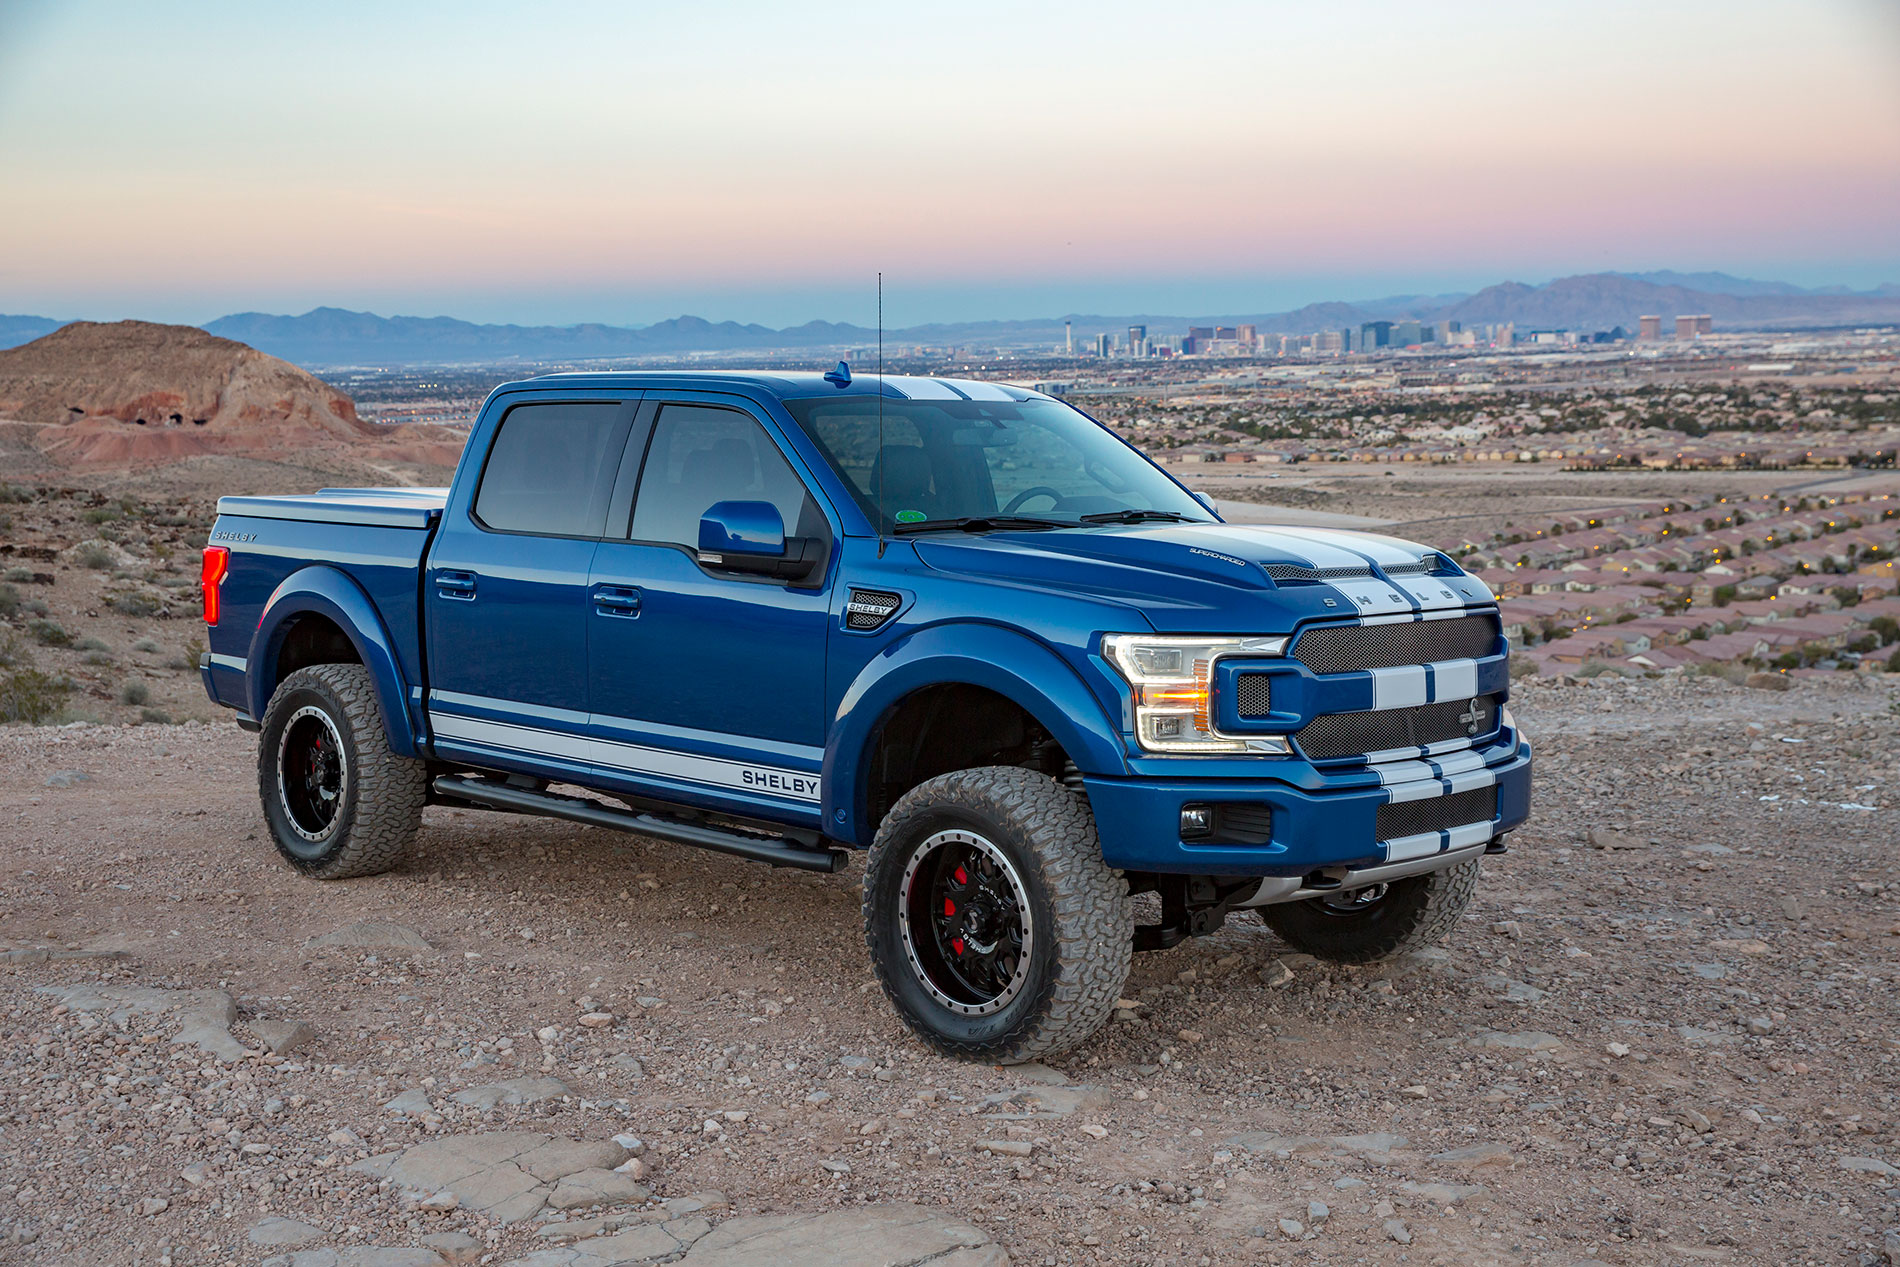 Shelby F 150